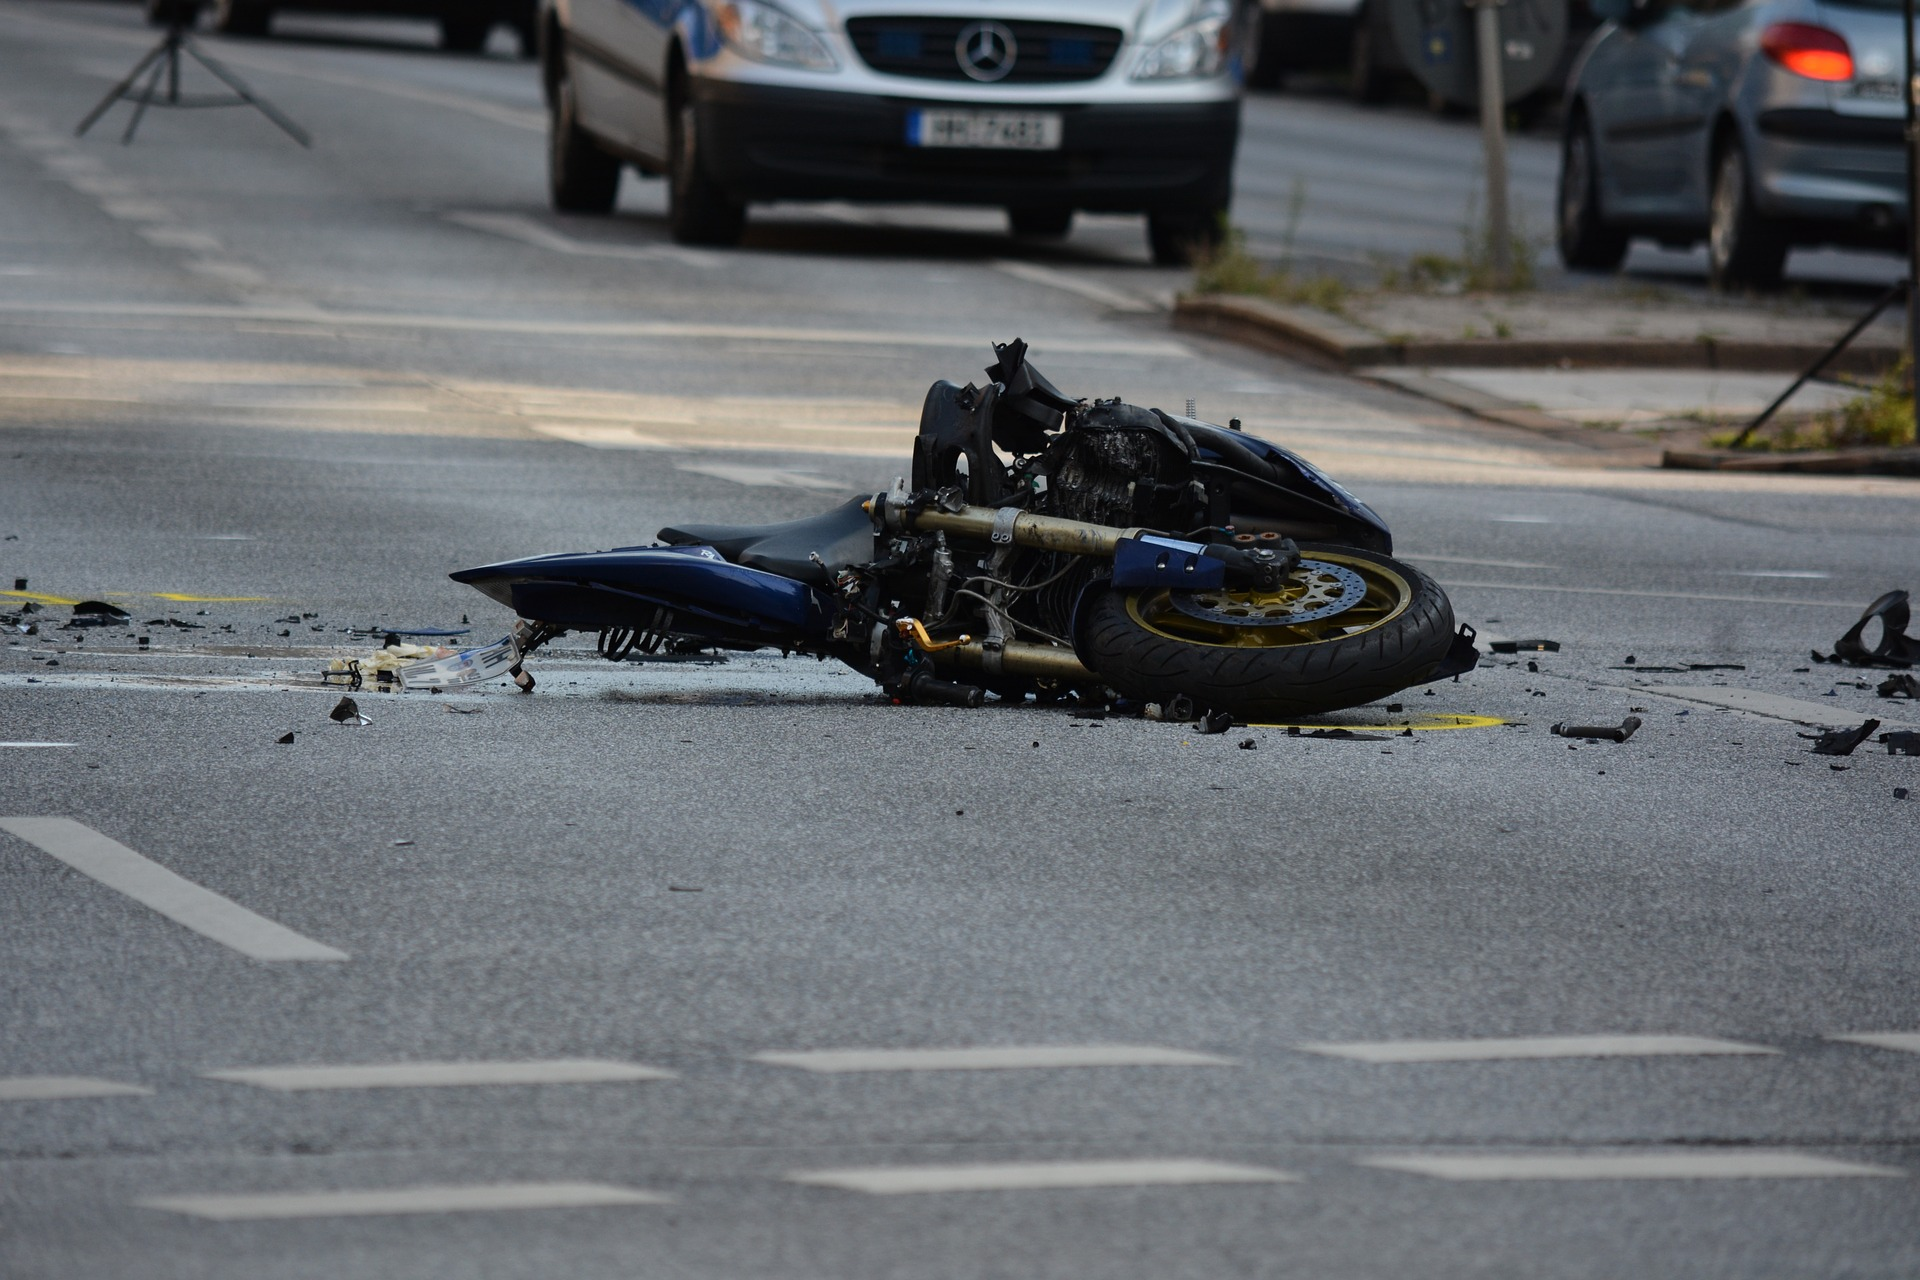 Motorcycle Accident Treatment in Phoenix